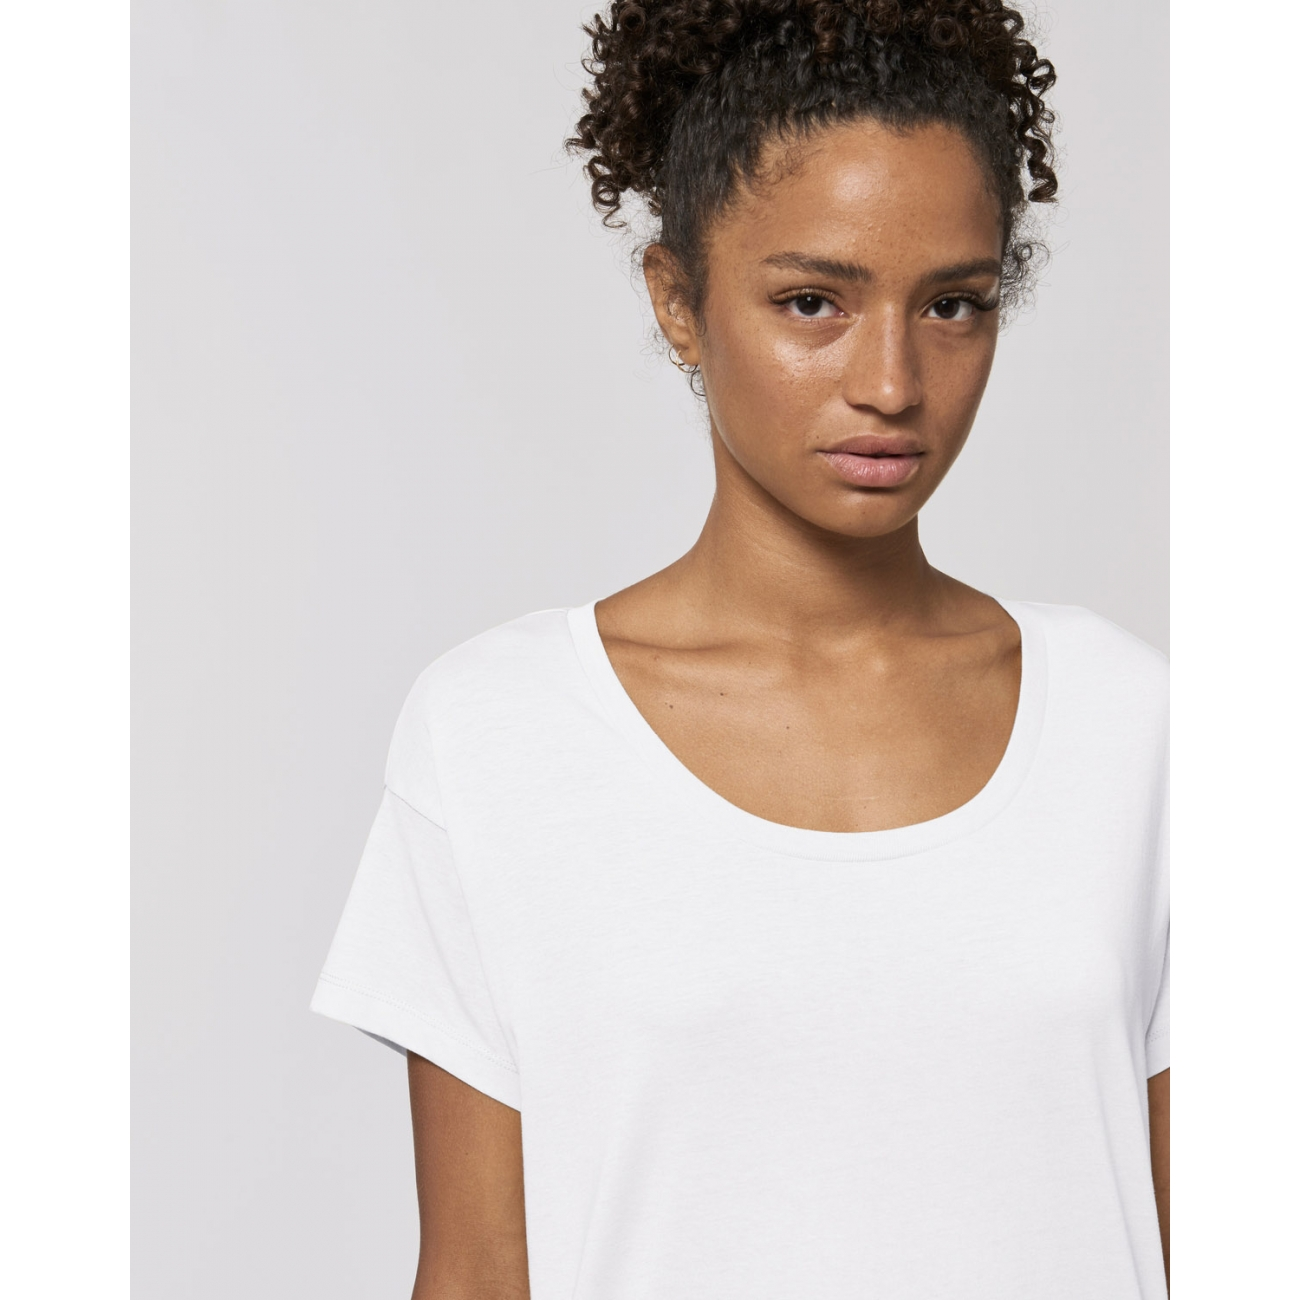 https://tee-shirt-bio.com/8761-thickbox_default/tee-shirt-pour-femme-blanc-a-manches-montees-coton-bio-chiller.jpg